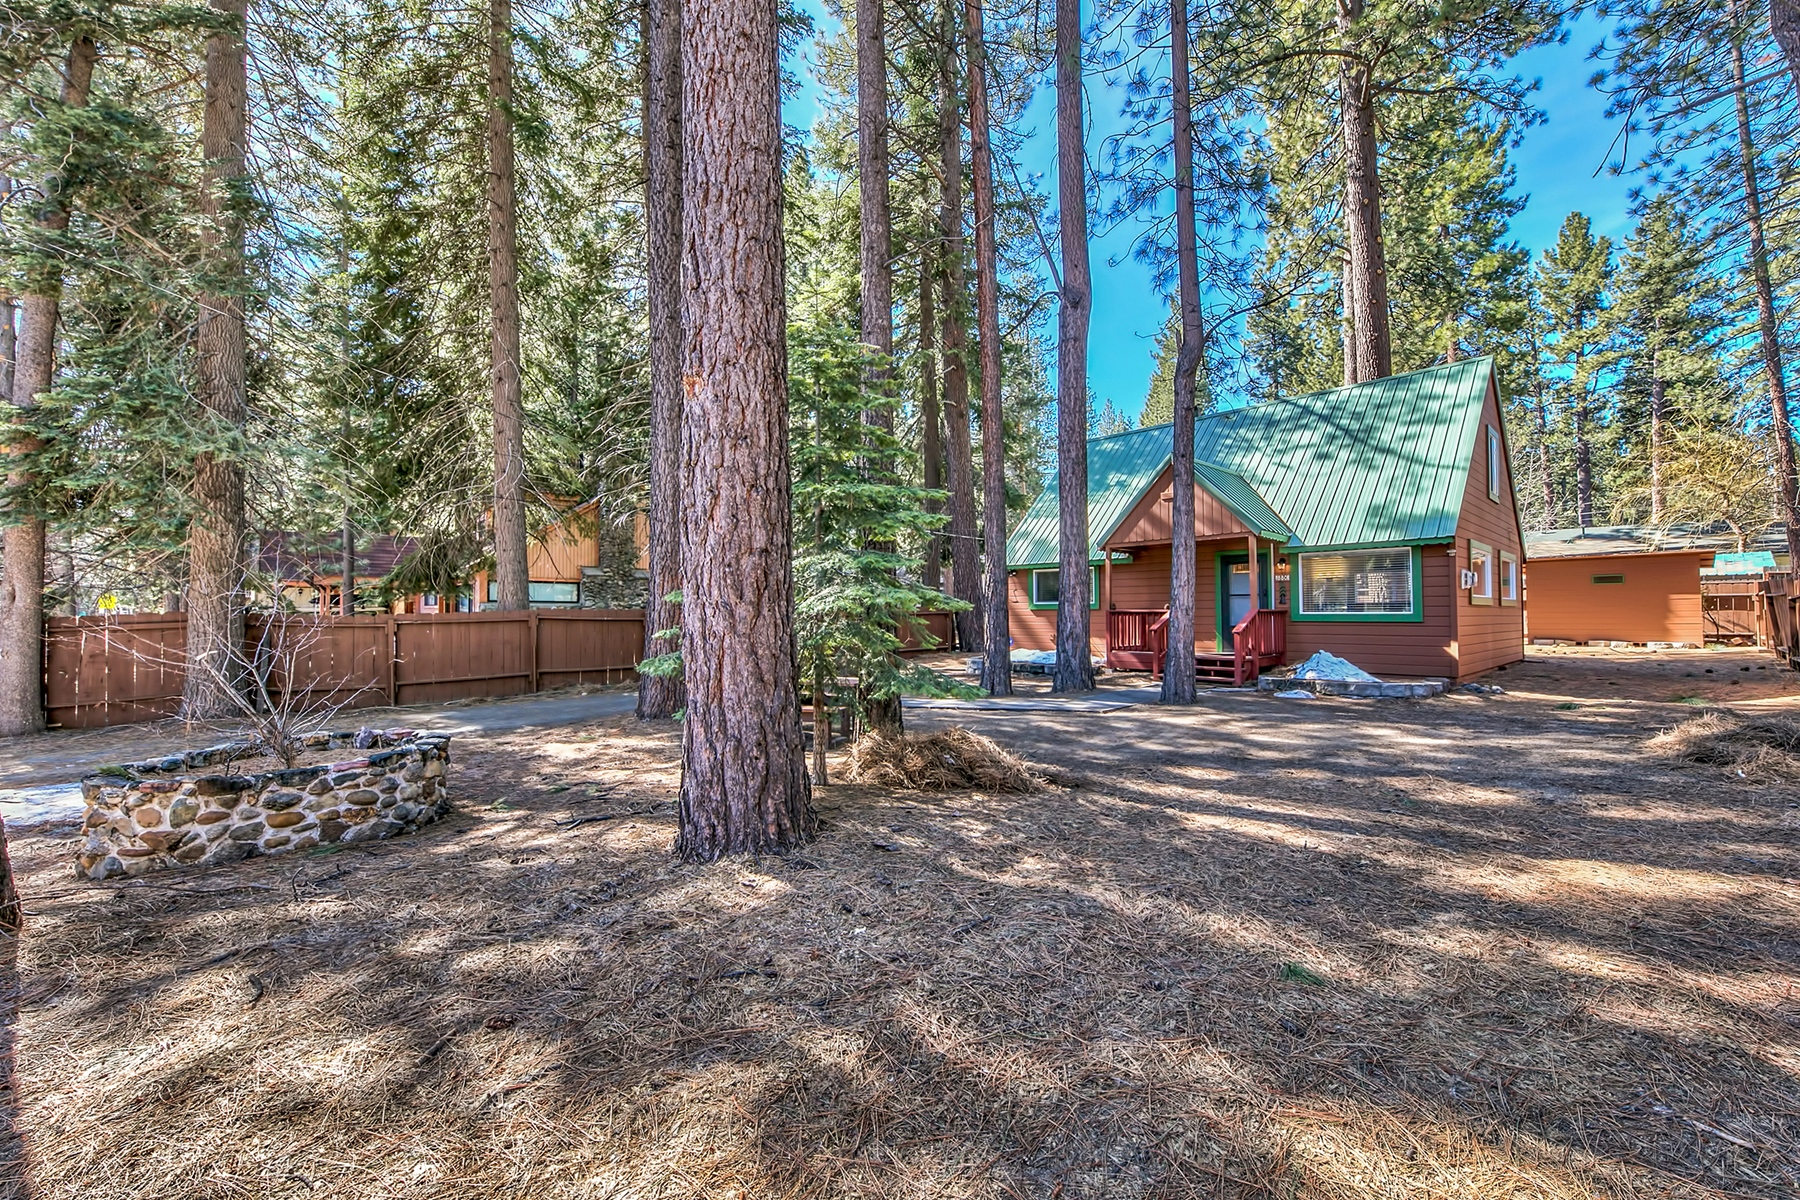 Additional photo for property listing at 880 Tahoe Island Drive, South Lake Drive, CA 96150 880 Tahoe Island Drive South Lake Tahoe, California 96150 United States